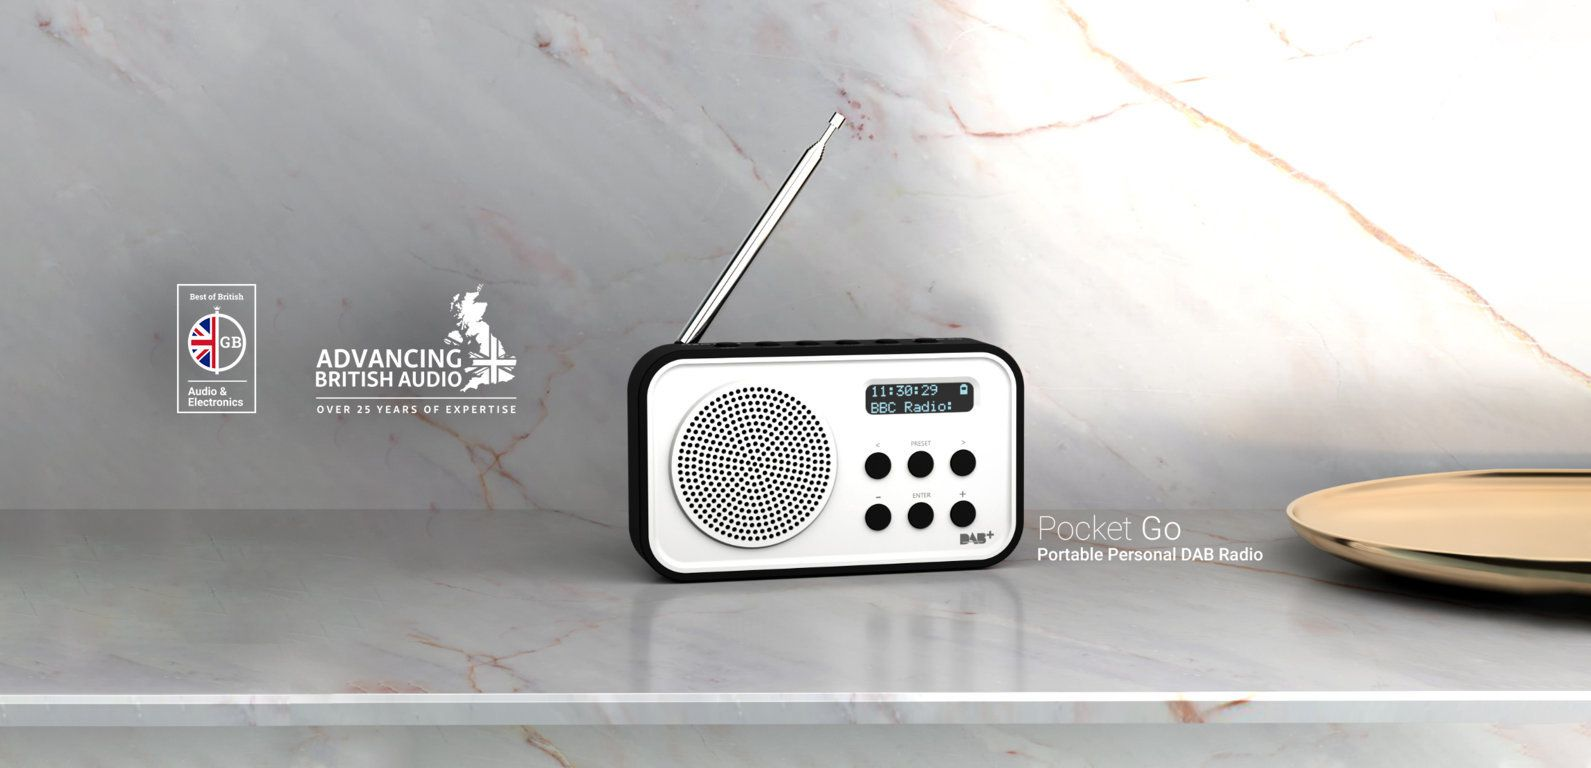 Pocket Go DAB Radio